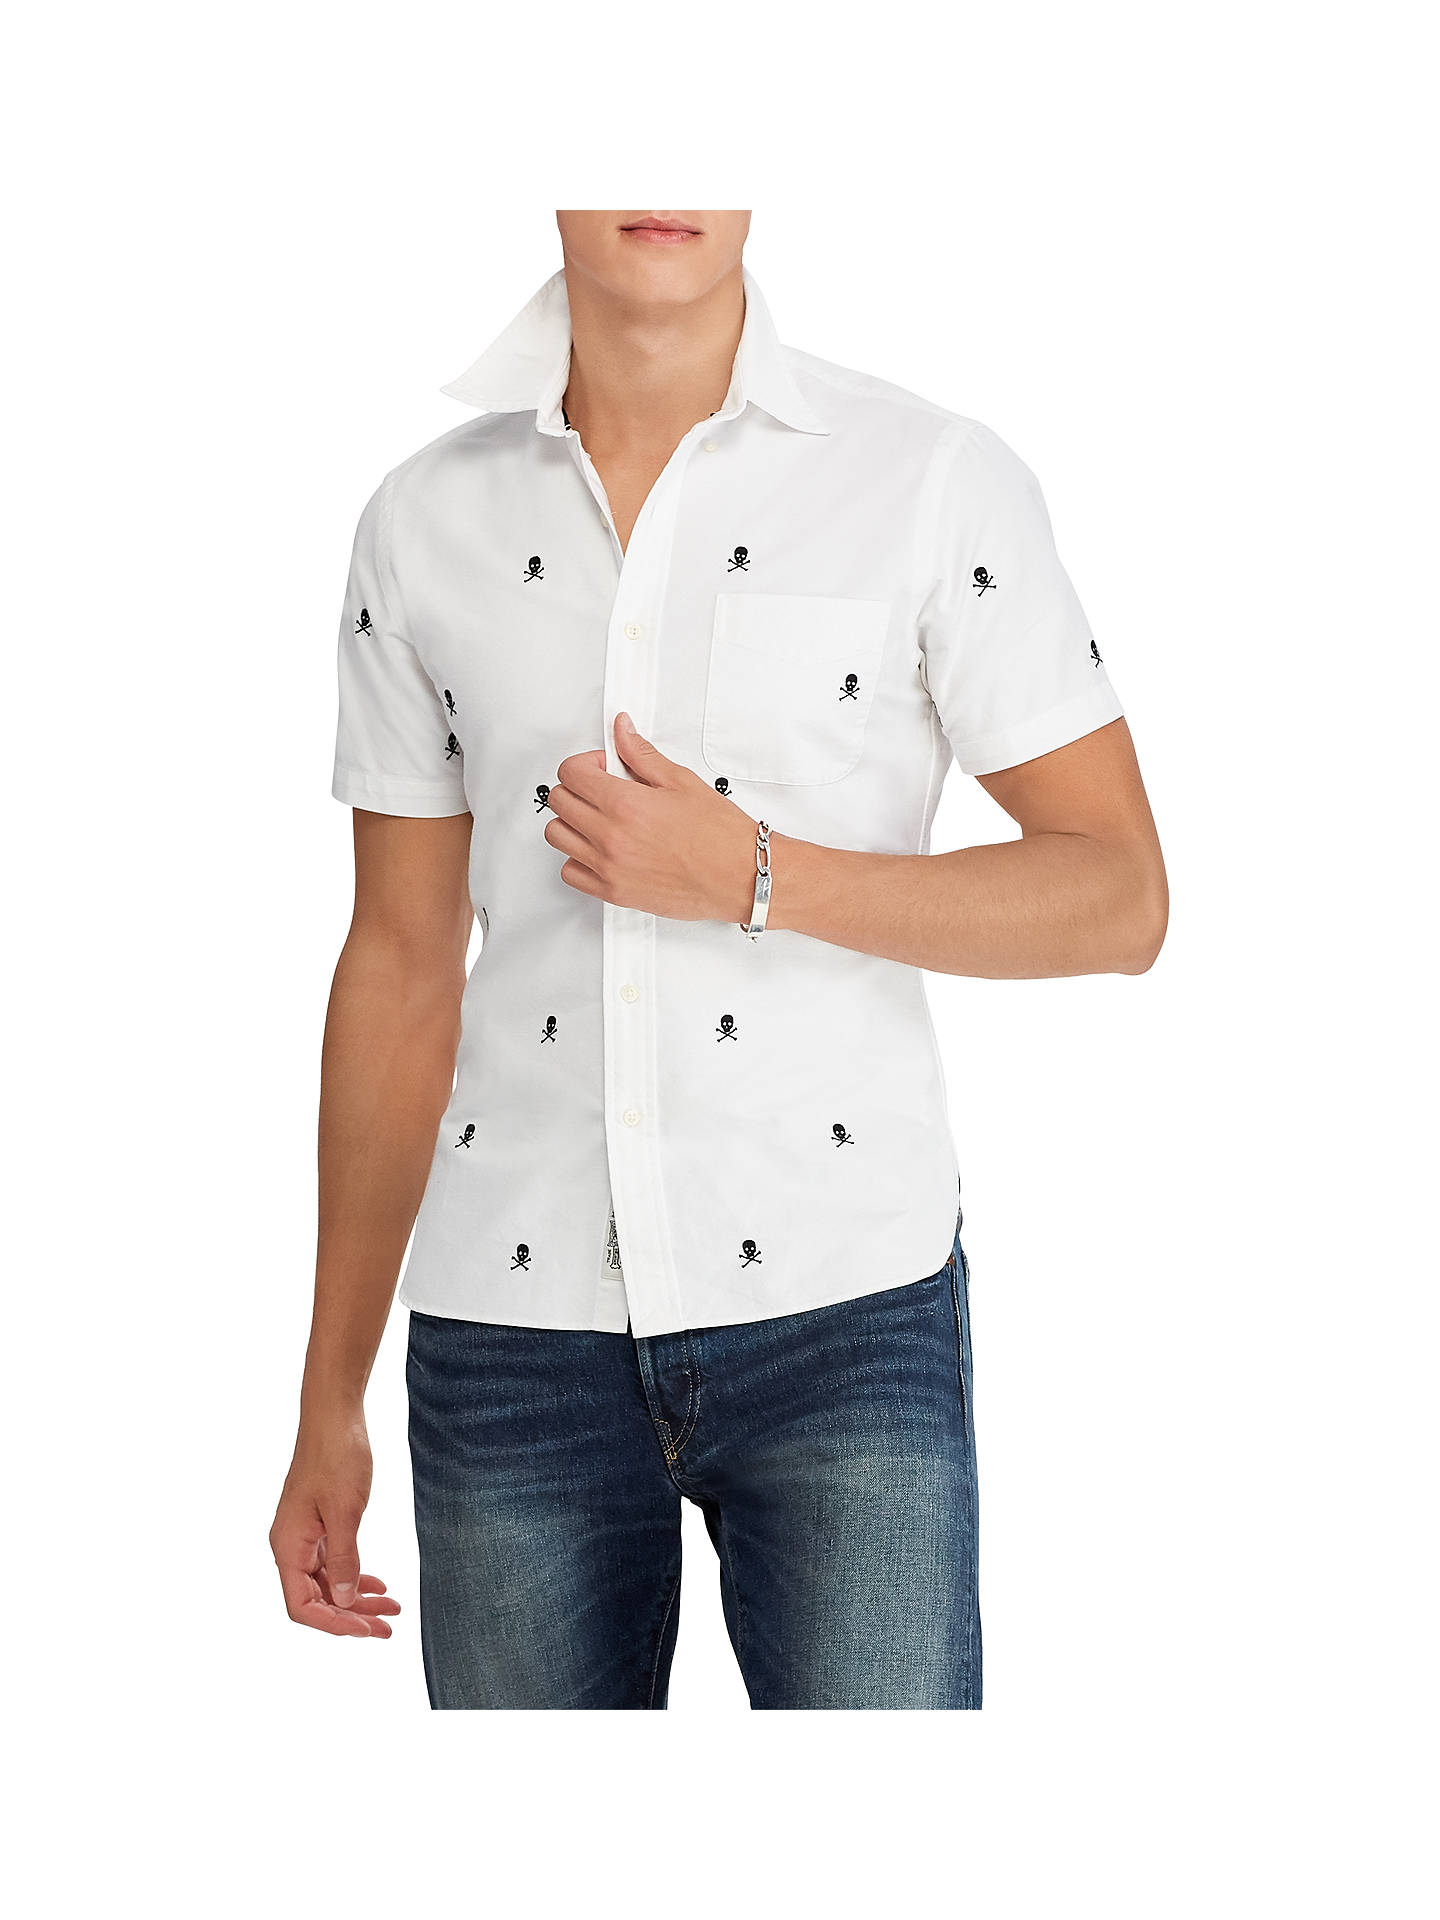 Polo Ralph Lauren Skull And Bones Slim Fit Shirt, White/Black at ...